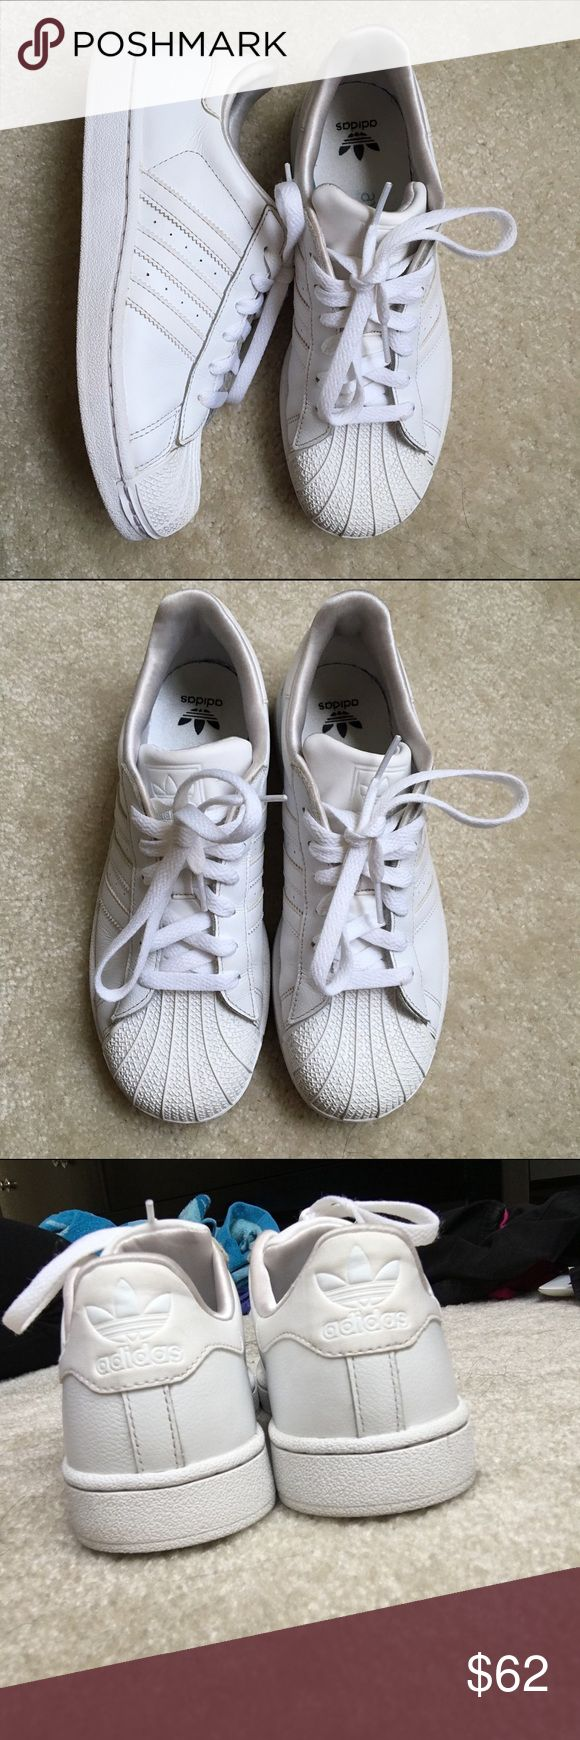 White Adidas Superstars Authentic, old school vintage adidas superstars great trendy shoes with orthopedic insoles, size 5 in youth/boys but fits 6-6.5 in womens Adidas Shoes Sneakers